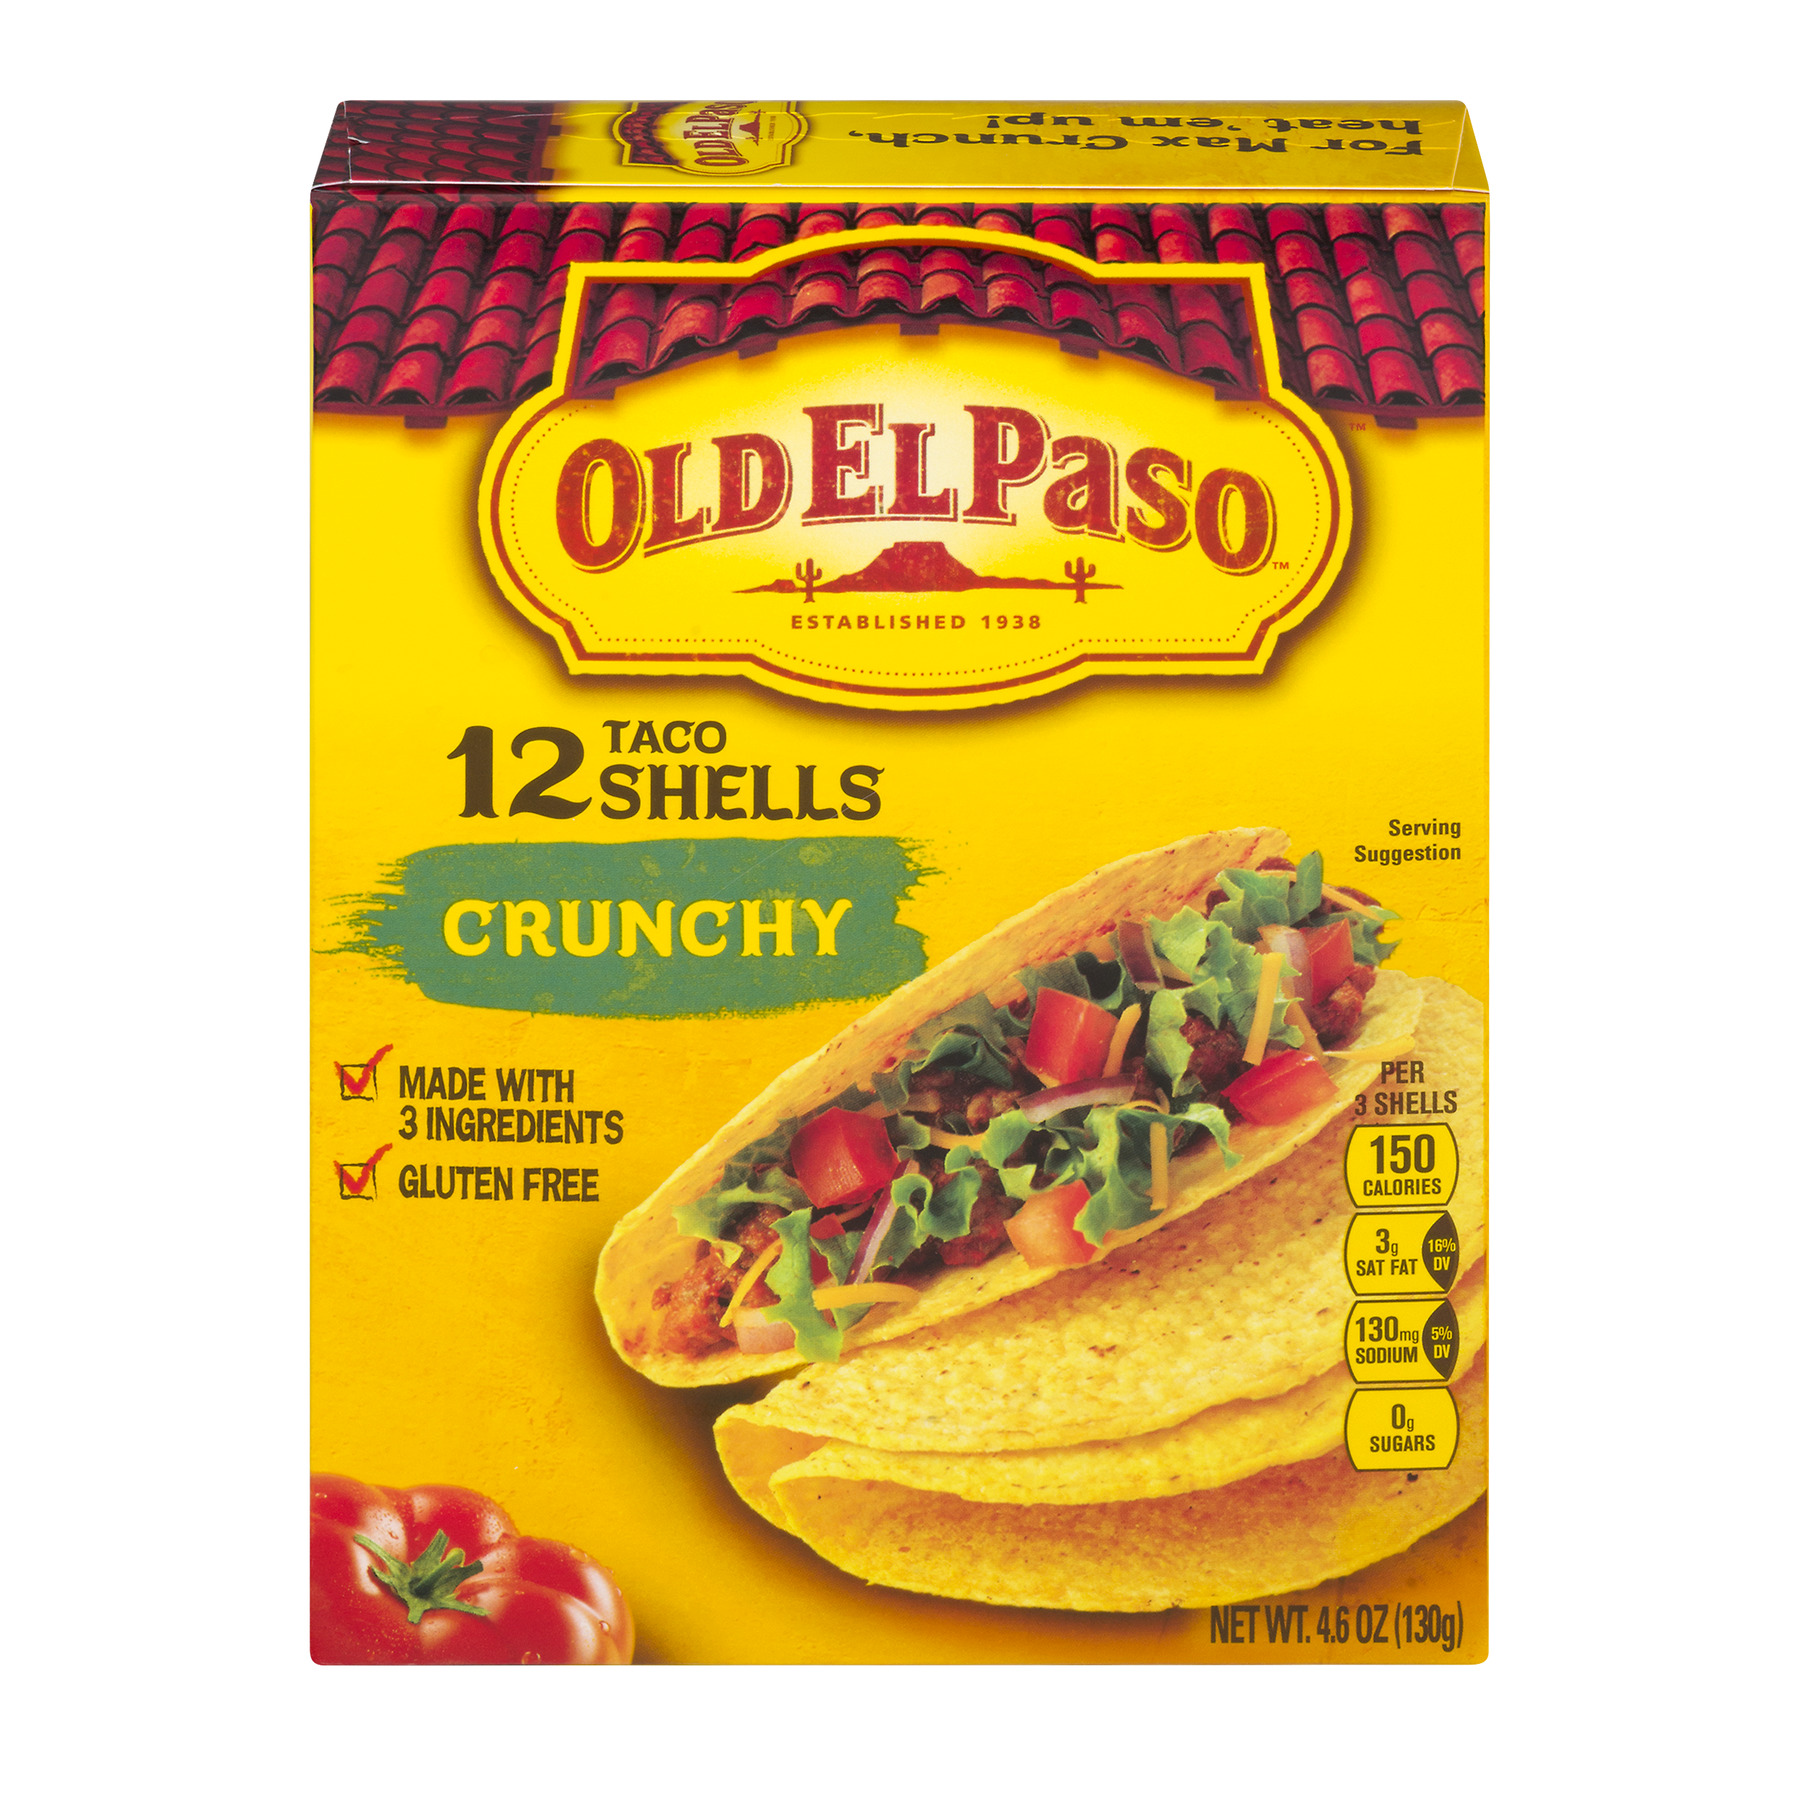 Old El Paso™ Crunchy Shells 12 - 4.6 oz Box